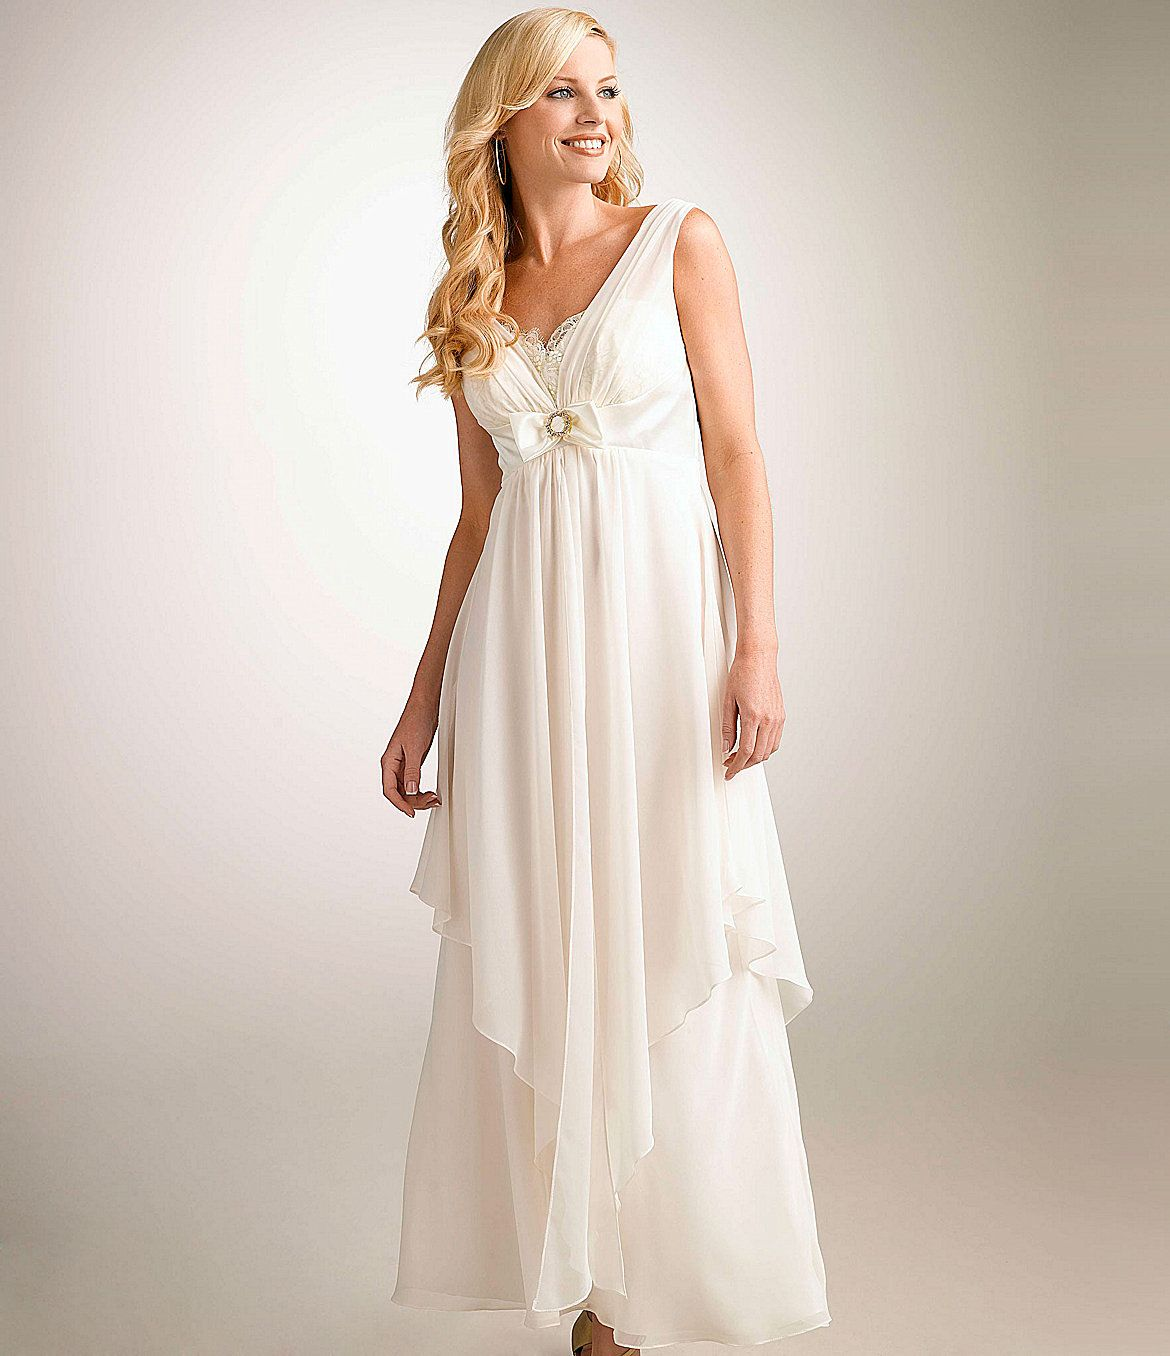 Betsy u adam asymmetrical chiffon gown dillards wedding